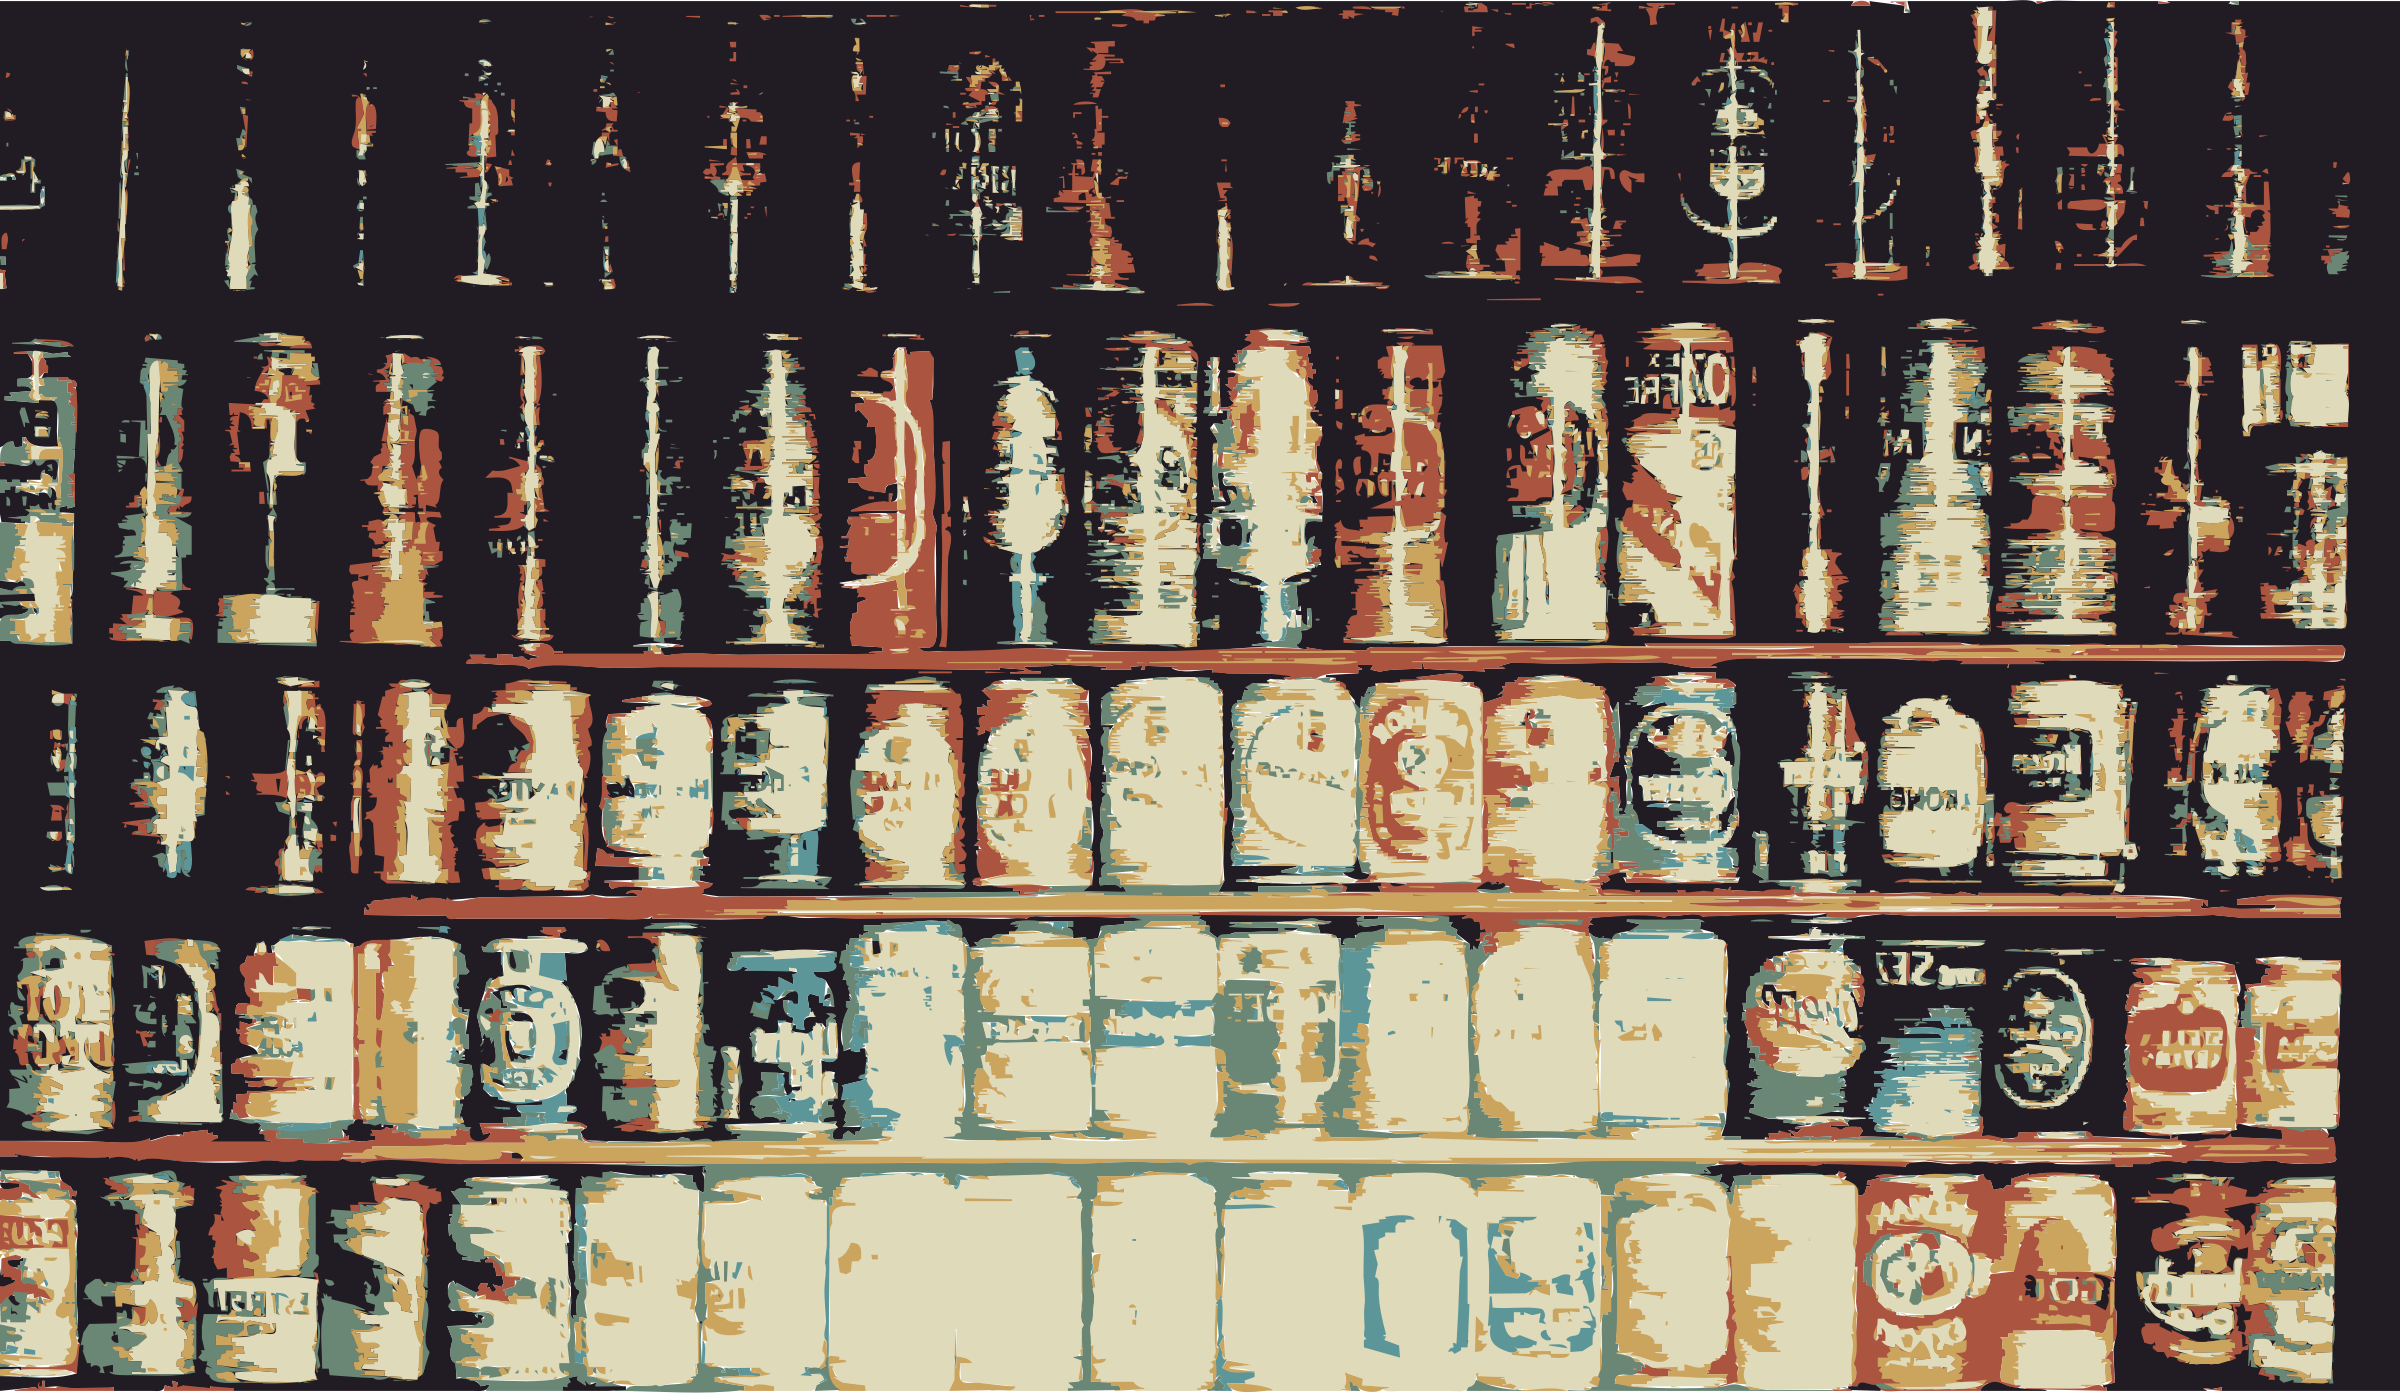 Beijing Cream Wall of Beer by beijingcream